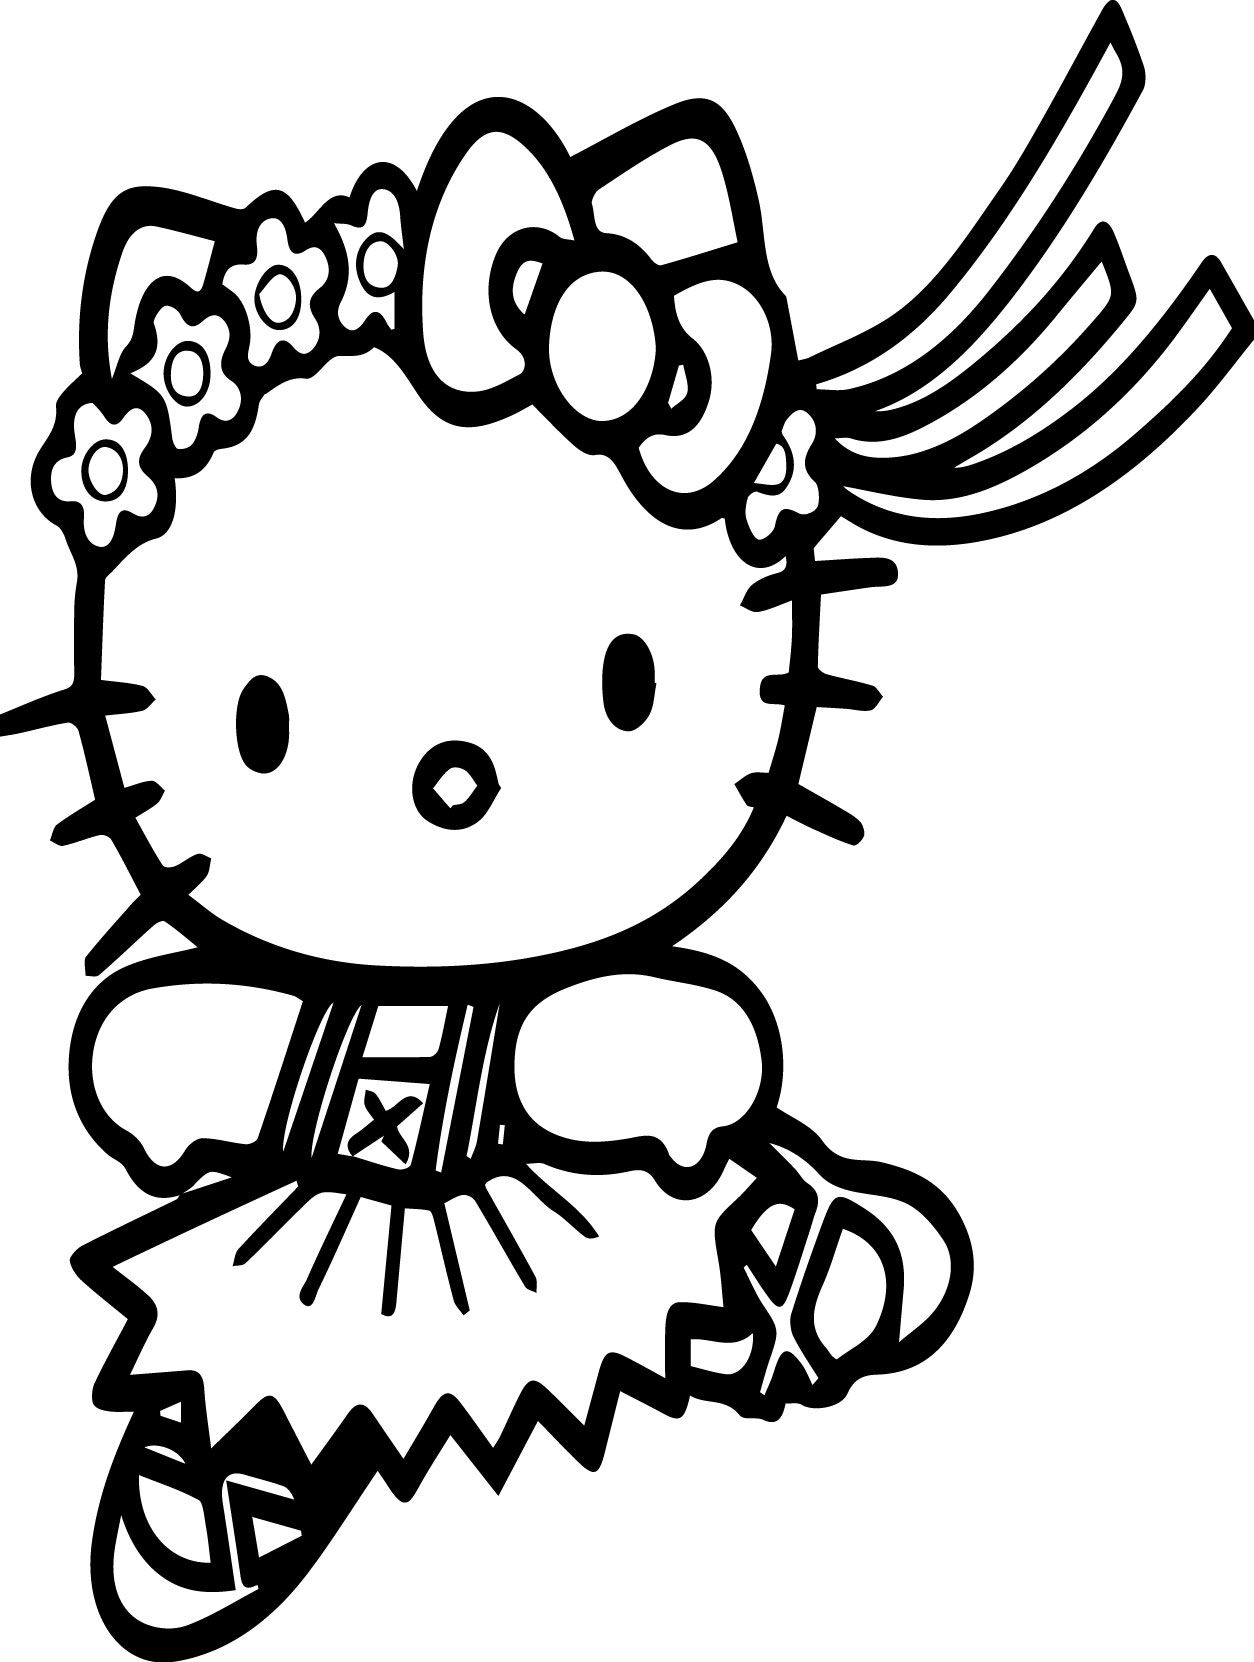 Cool Hello Kitty Run Coloring Page Hello Kitty Coloring Hello Kitty Colouring Pages Kitty Coloring